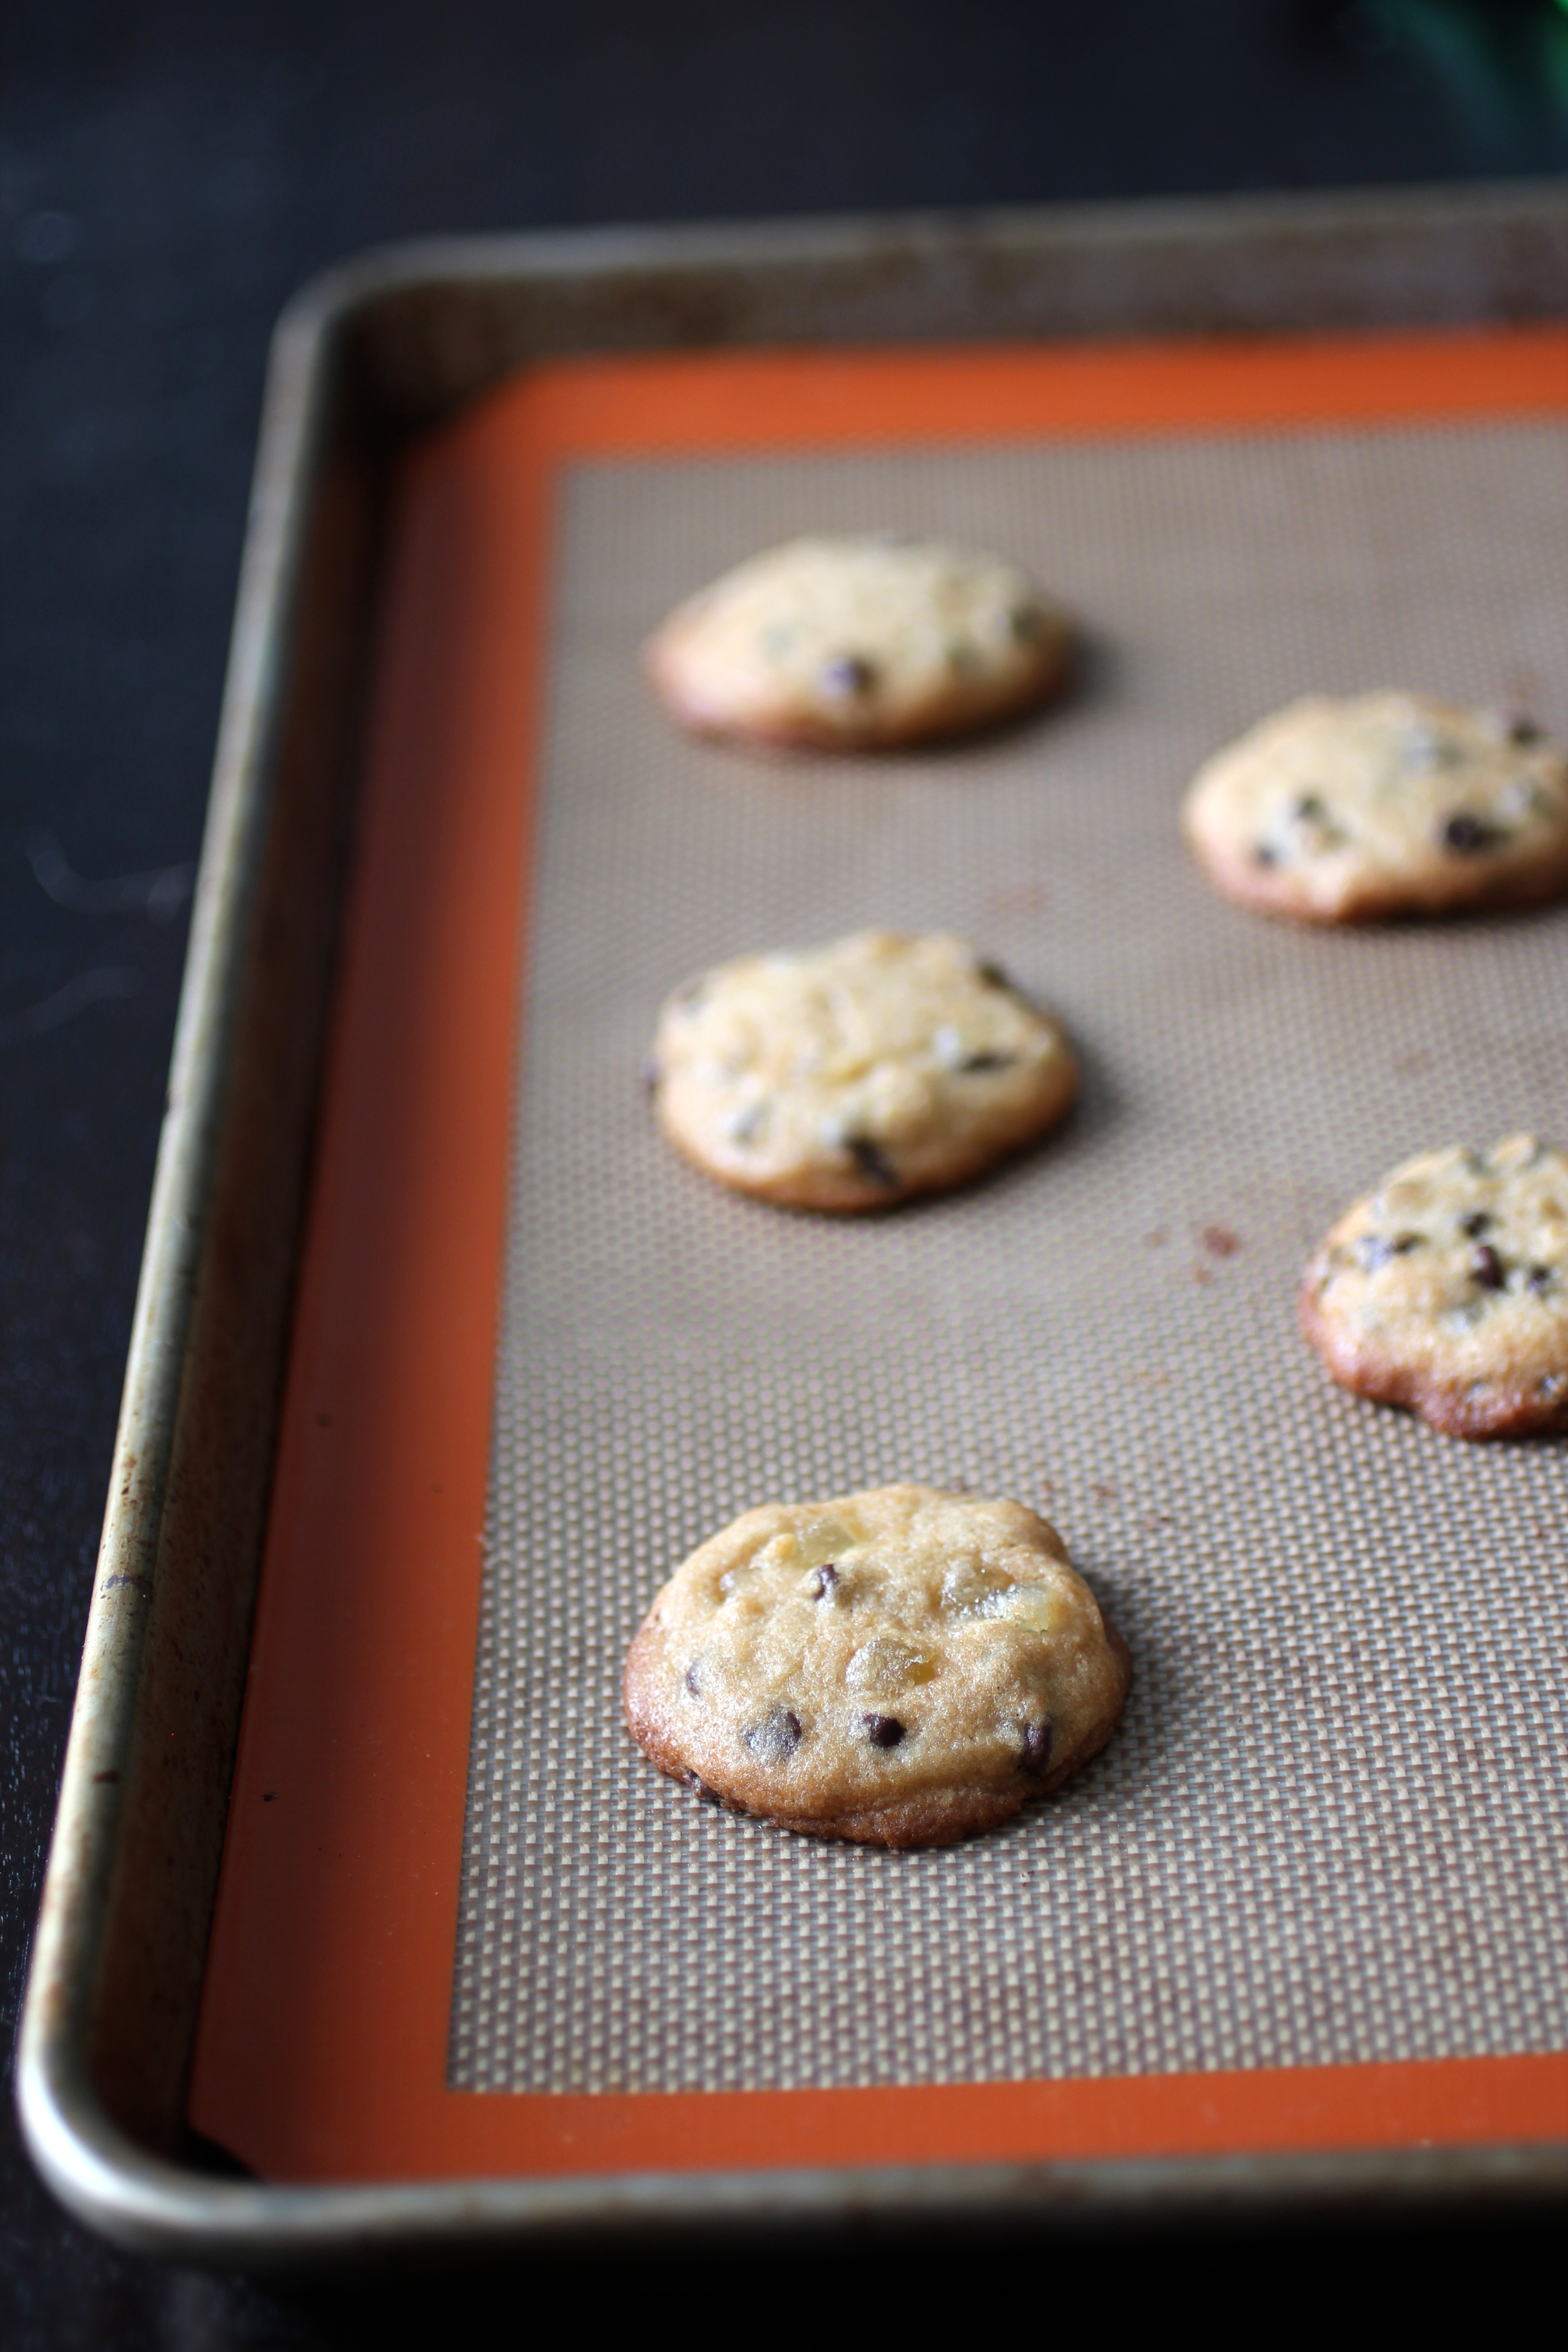 ... the soy milk lees and studded with candied ginger and chocolate chips